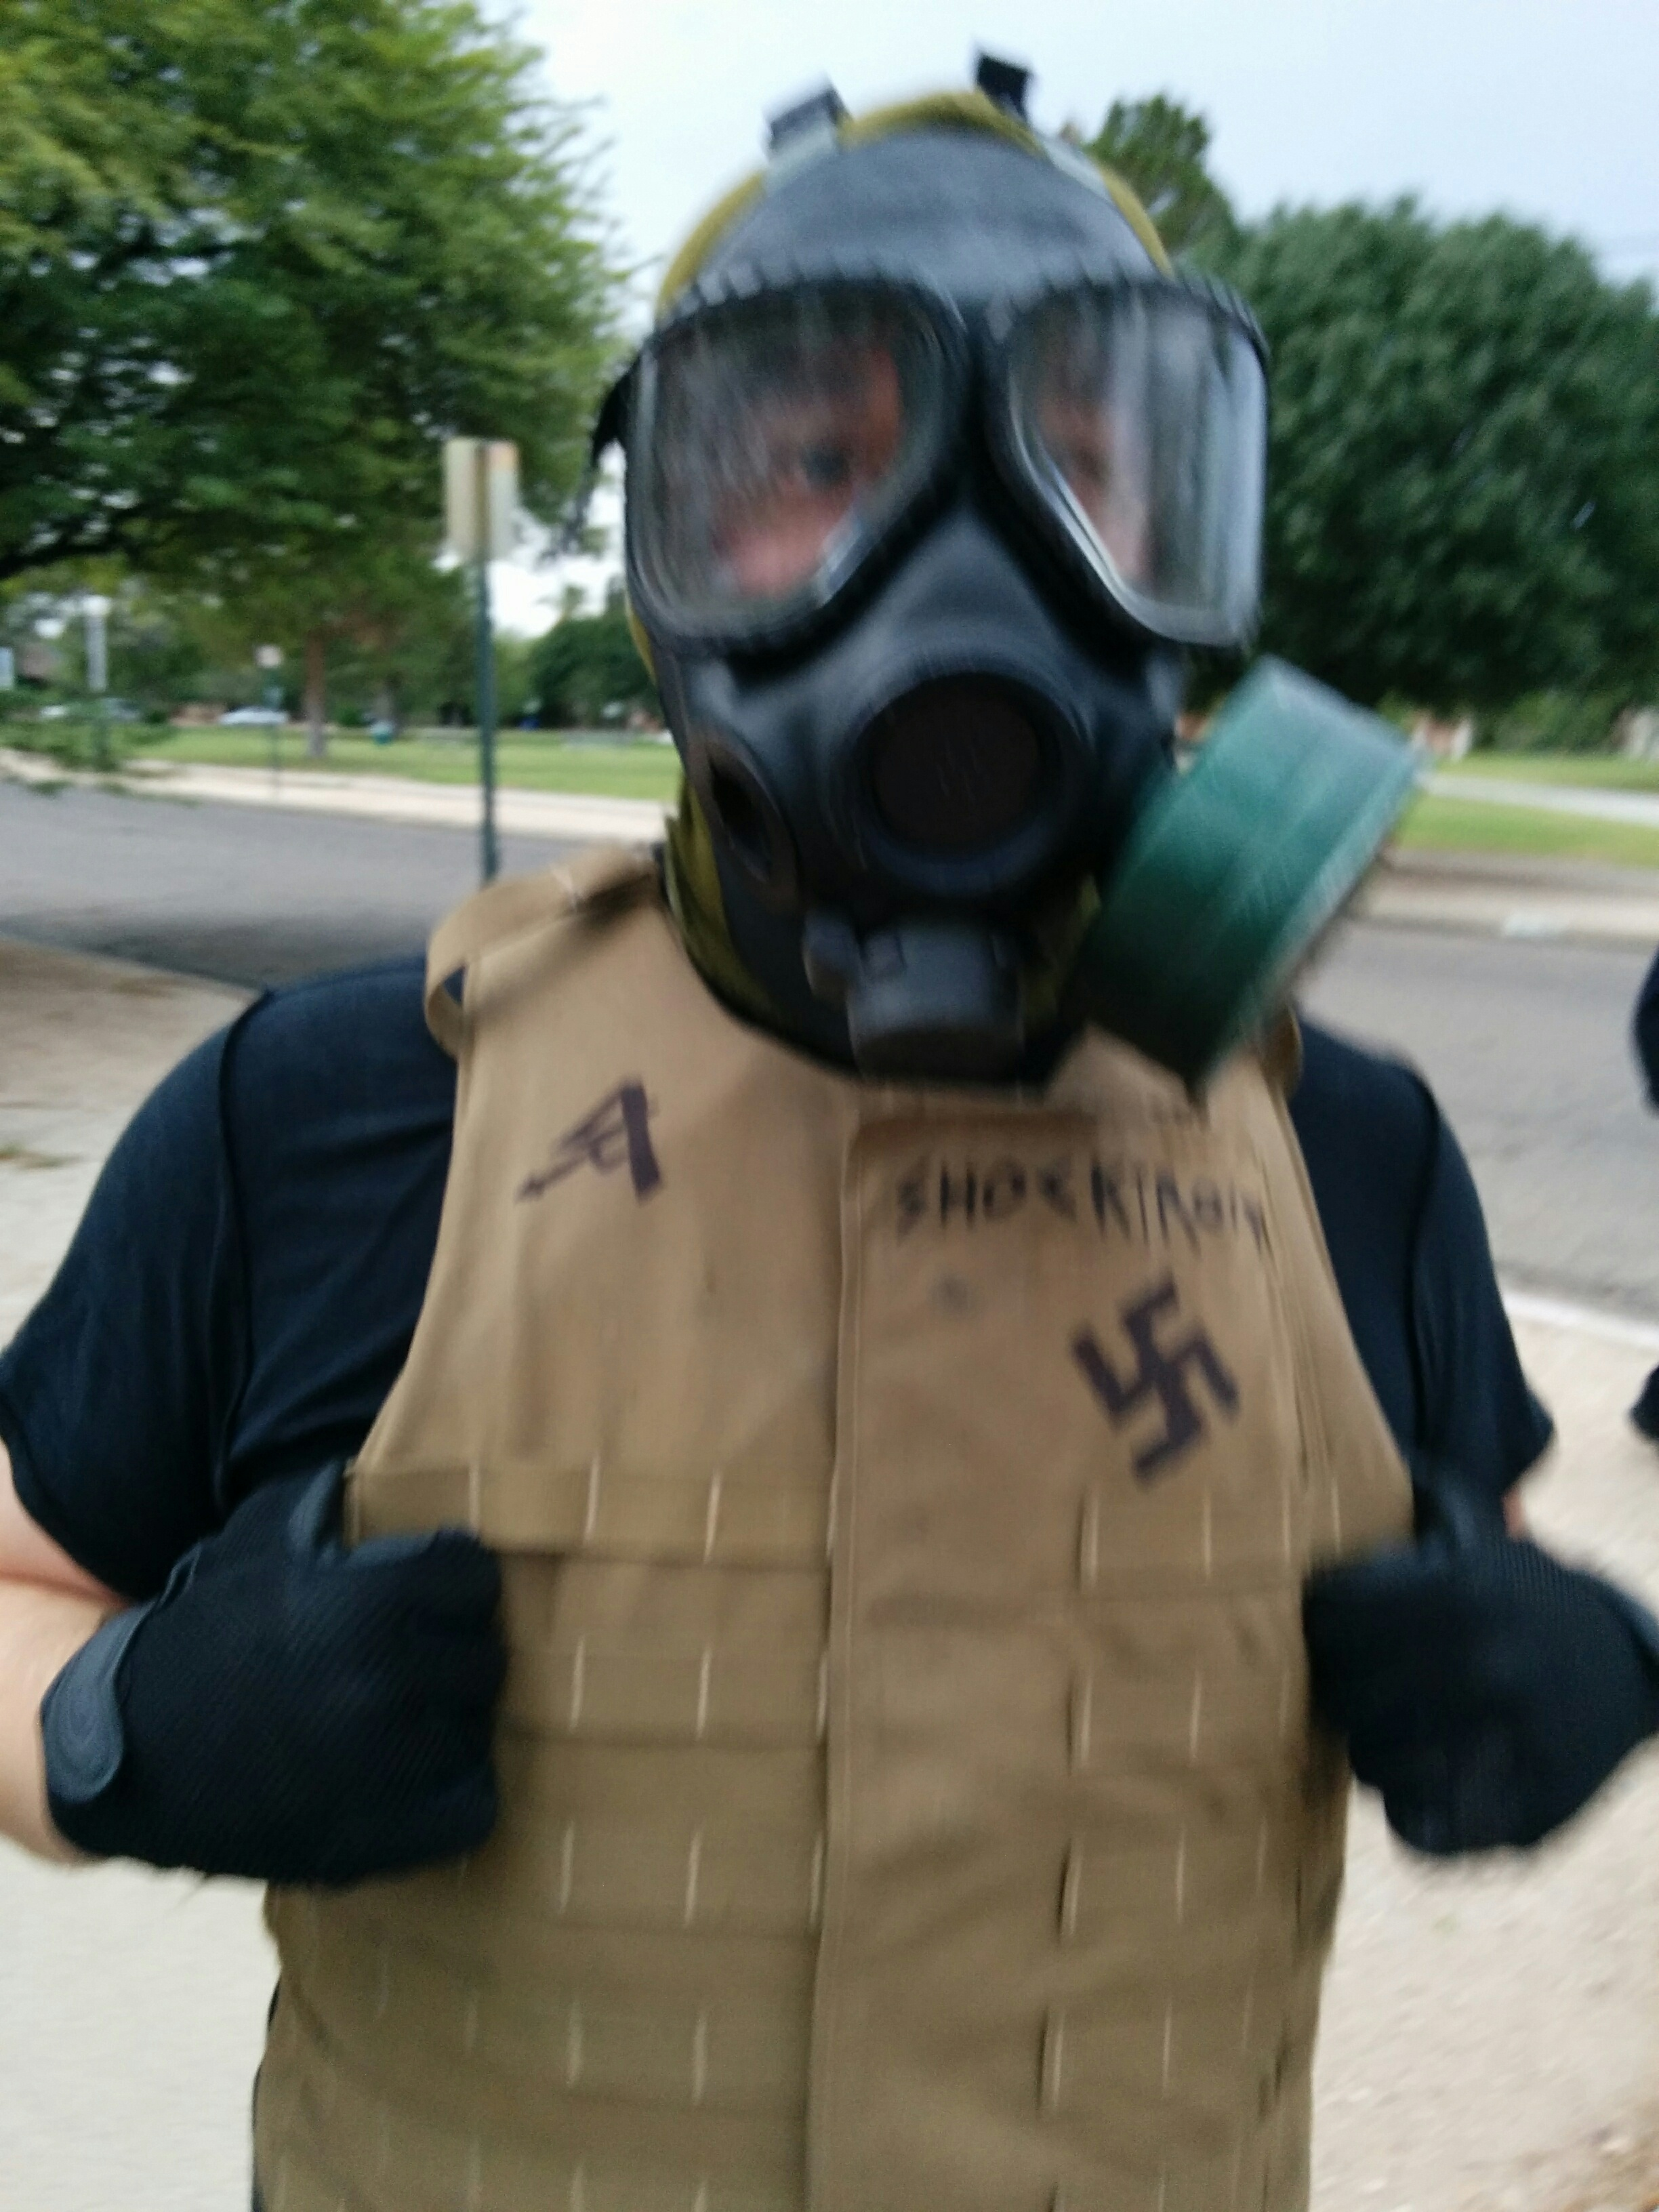 Close up of the Nazi in the gas mask, showing a swastika and the words I AM HATE sharpied on his flak jacket.